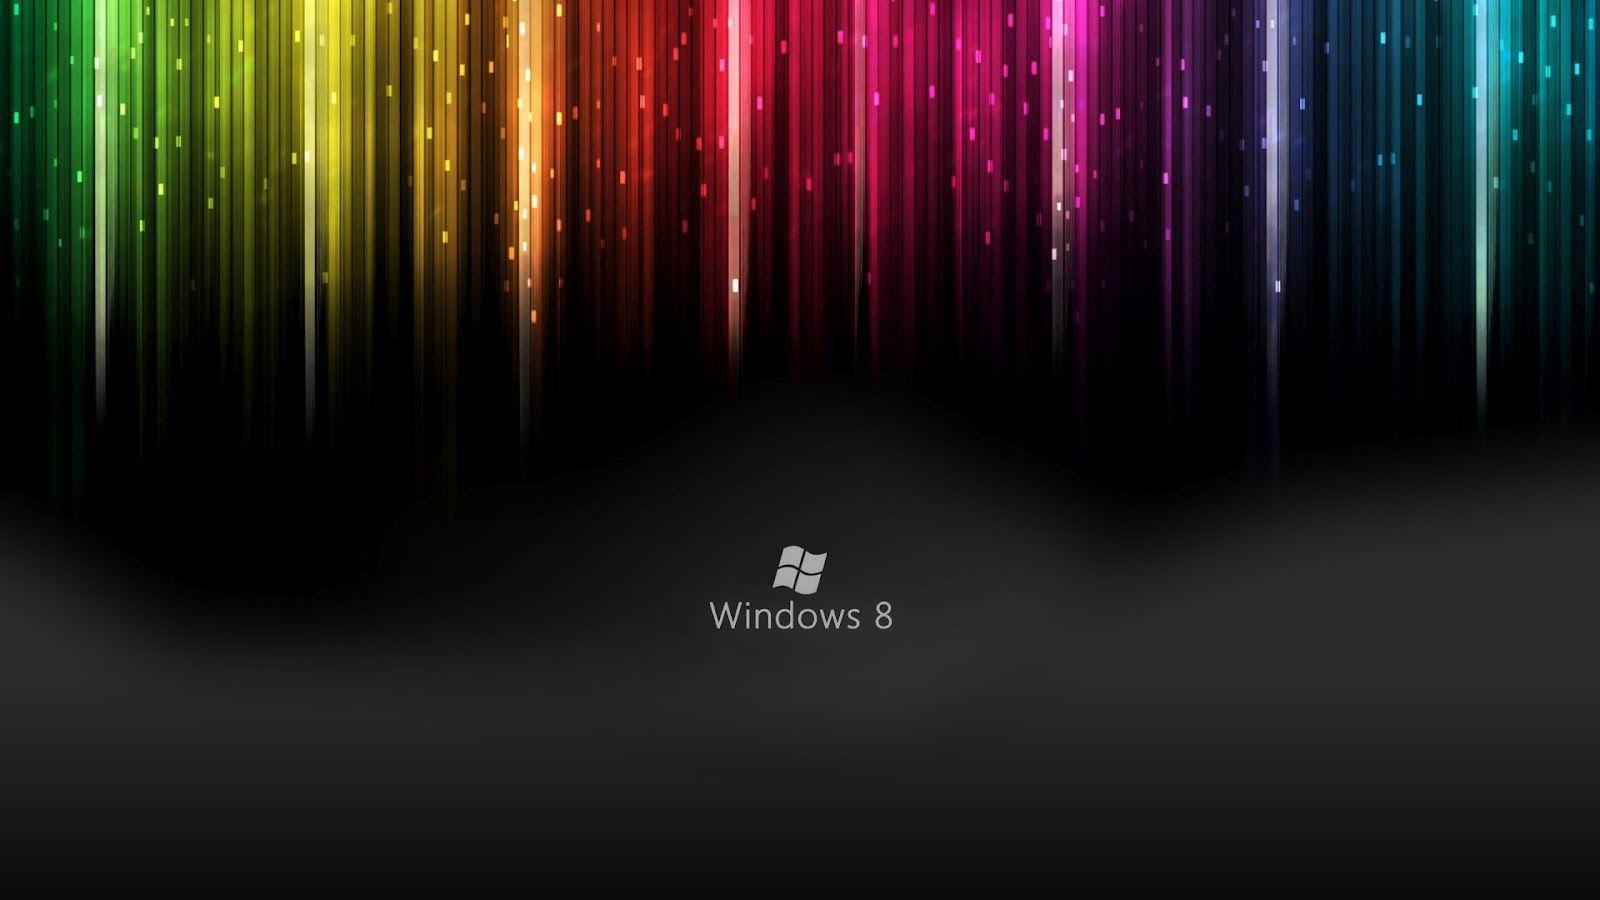 Top 10 Windows 8 Wallpapers HD